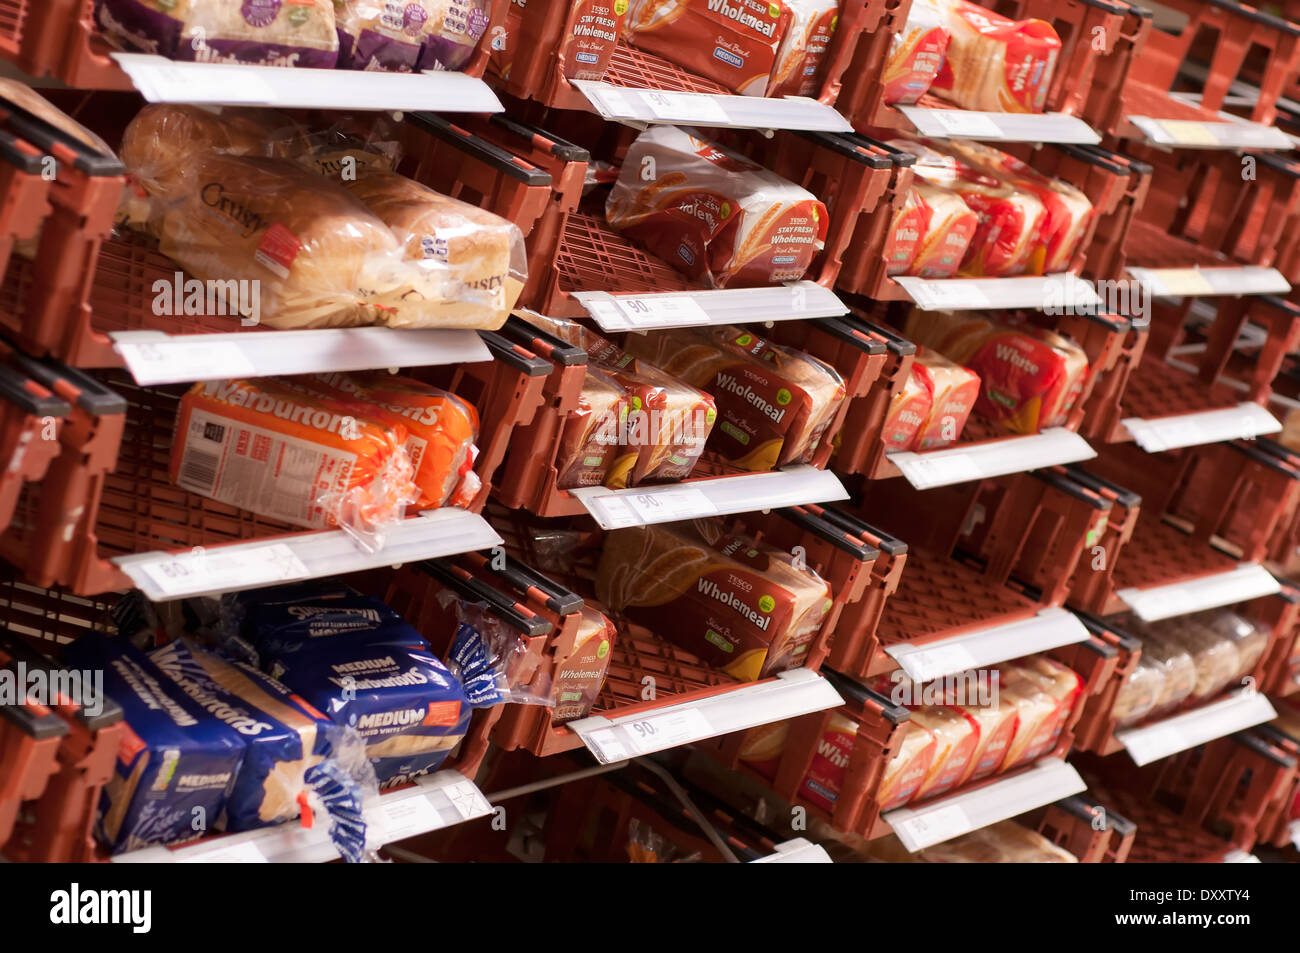 Loaves of bread on supermarket shelves - Stock Image